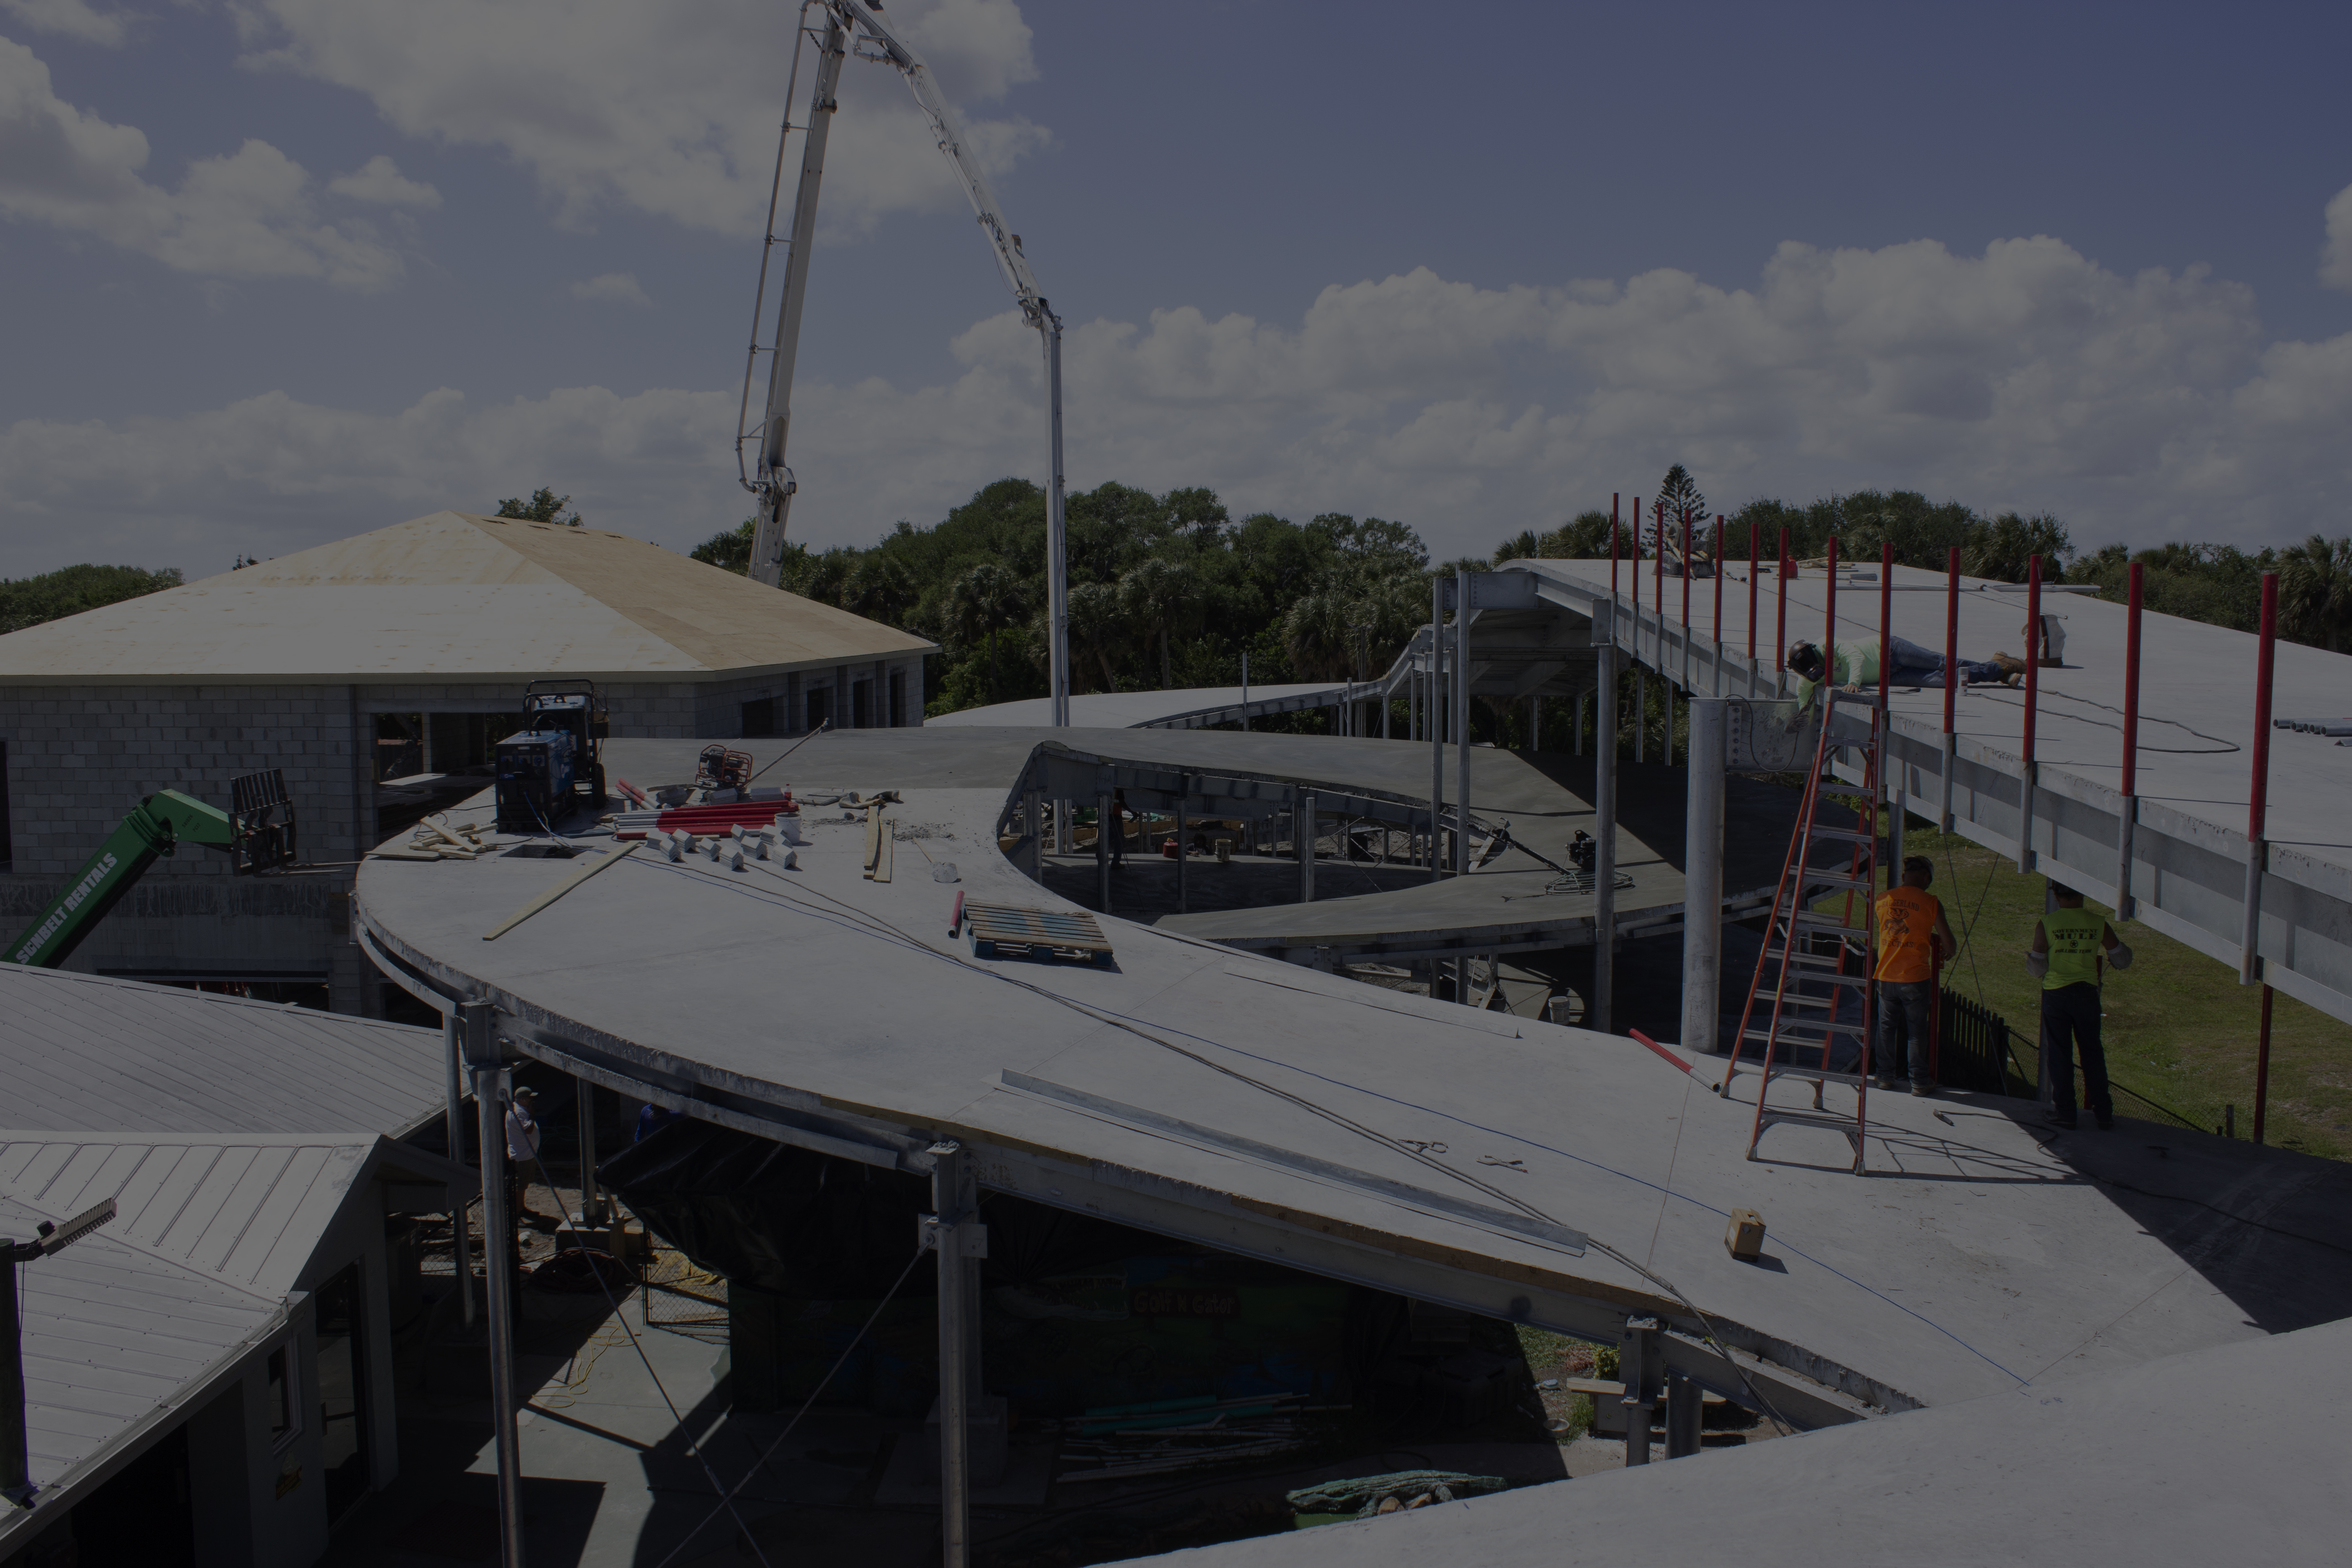 nearly complete construction for Cocoa Beach racing go kart track